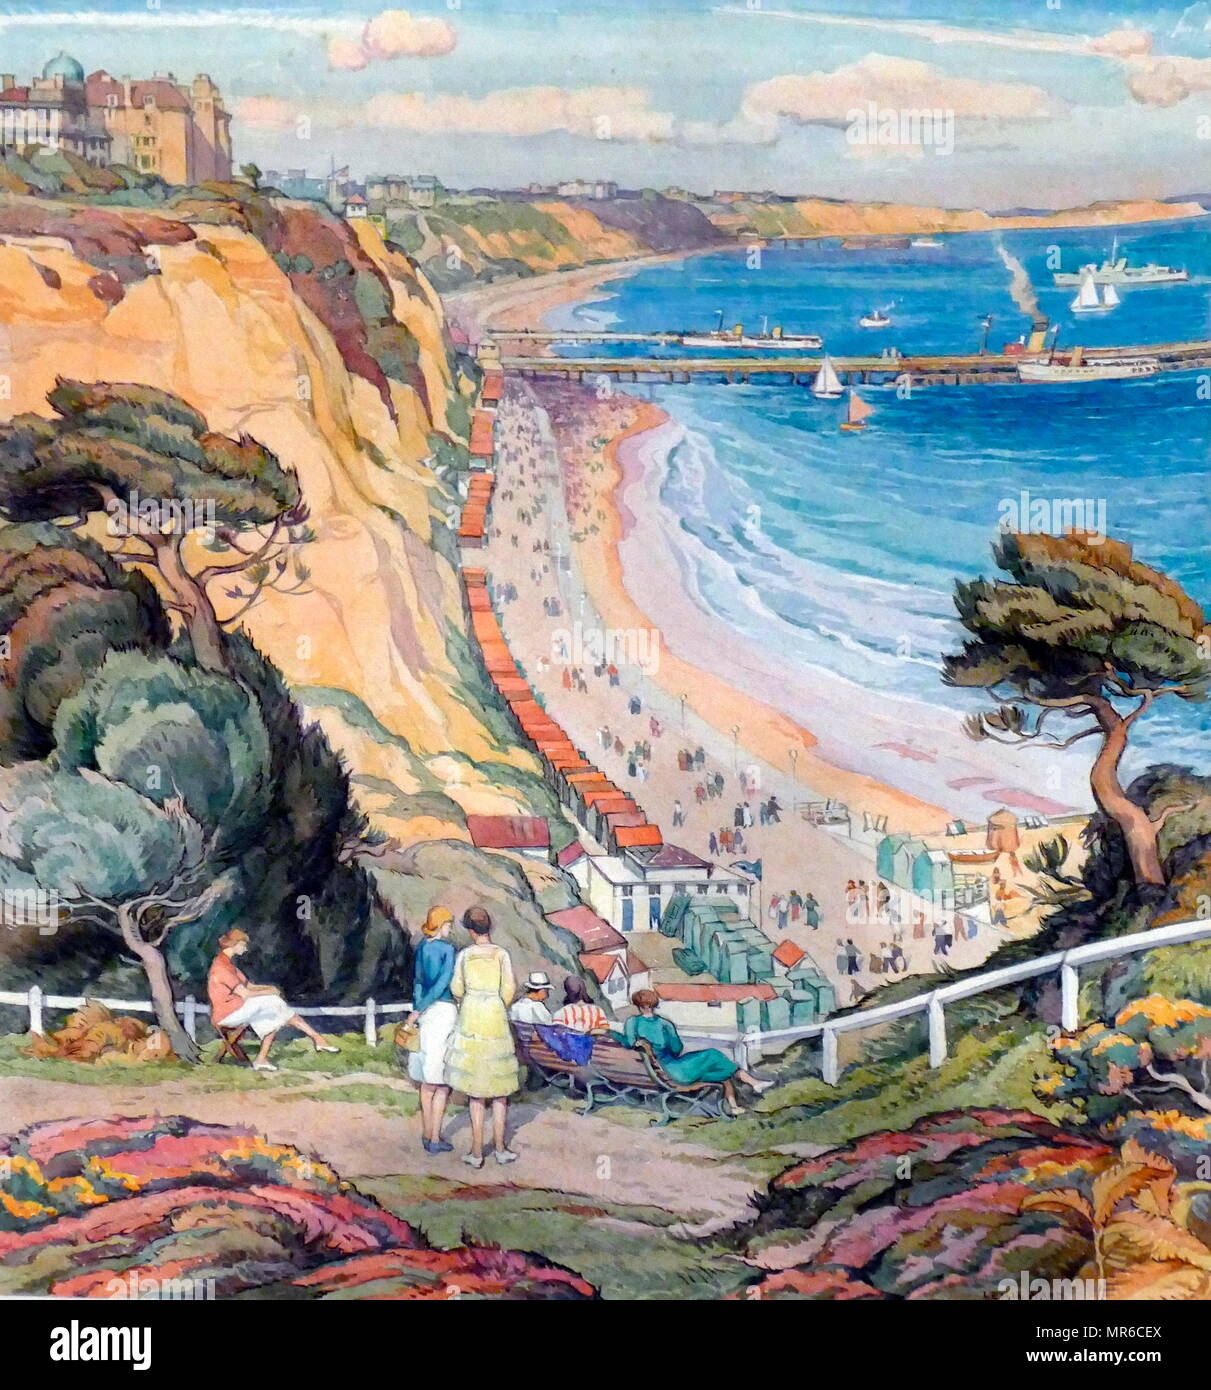 The Bay from Durley Chine, 1920-1930. Painted by Leslie Moffatt Ward (1888-1978). Watercolour on paper - Stock Image